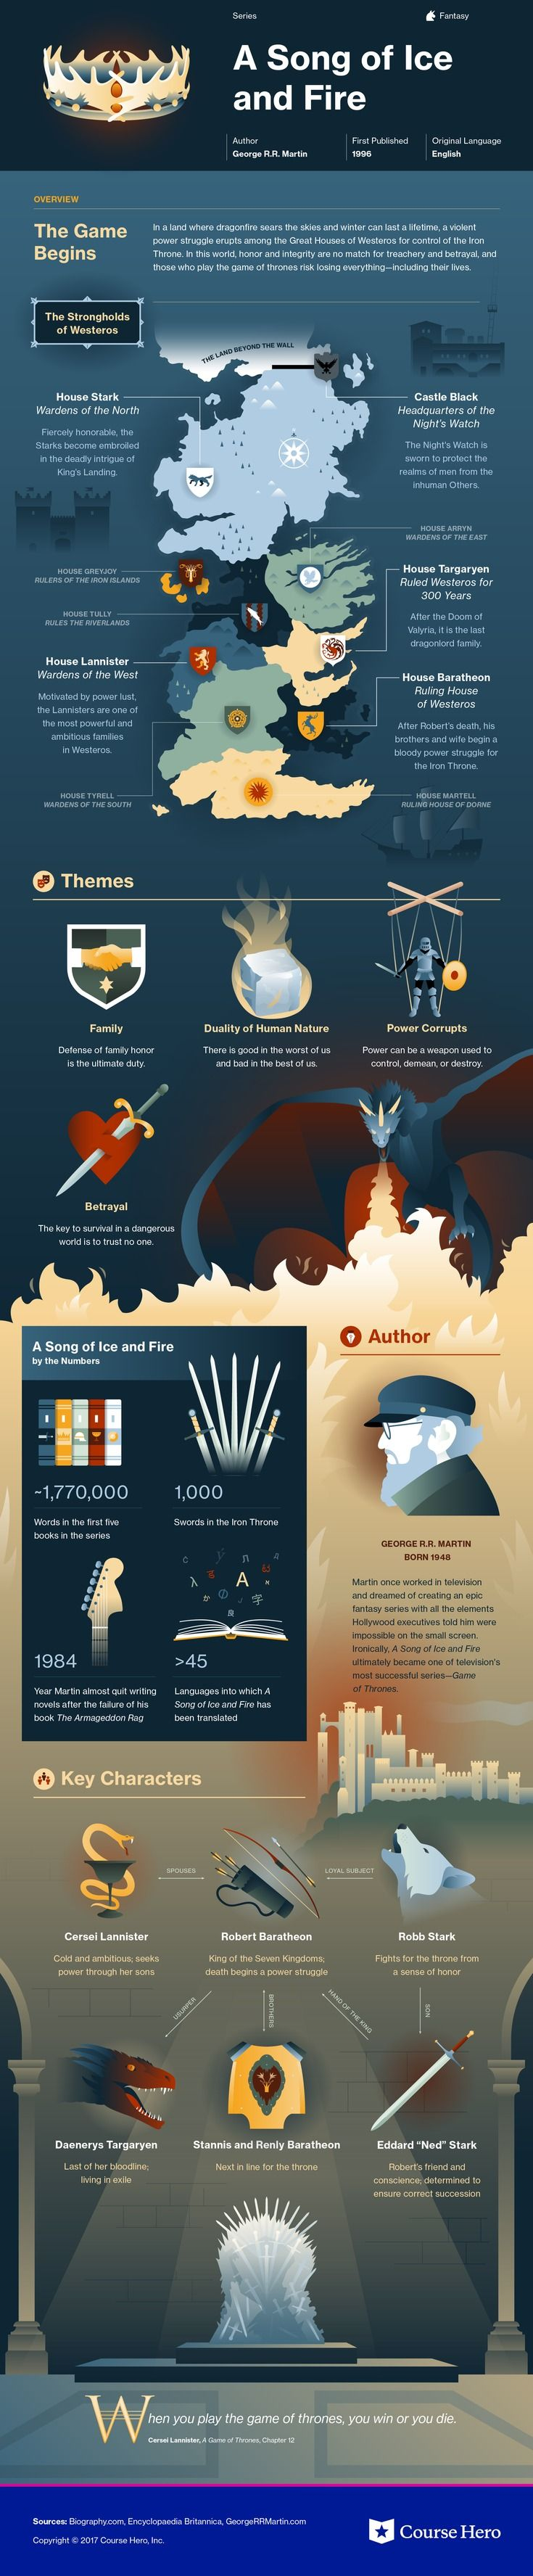 Check out this infographic for George R.R. Martin's A Song of Ice and Fire (Game of Thrones) https://www.coursehero.com/lit/A-Song-of-Ice-and-Fire/